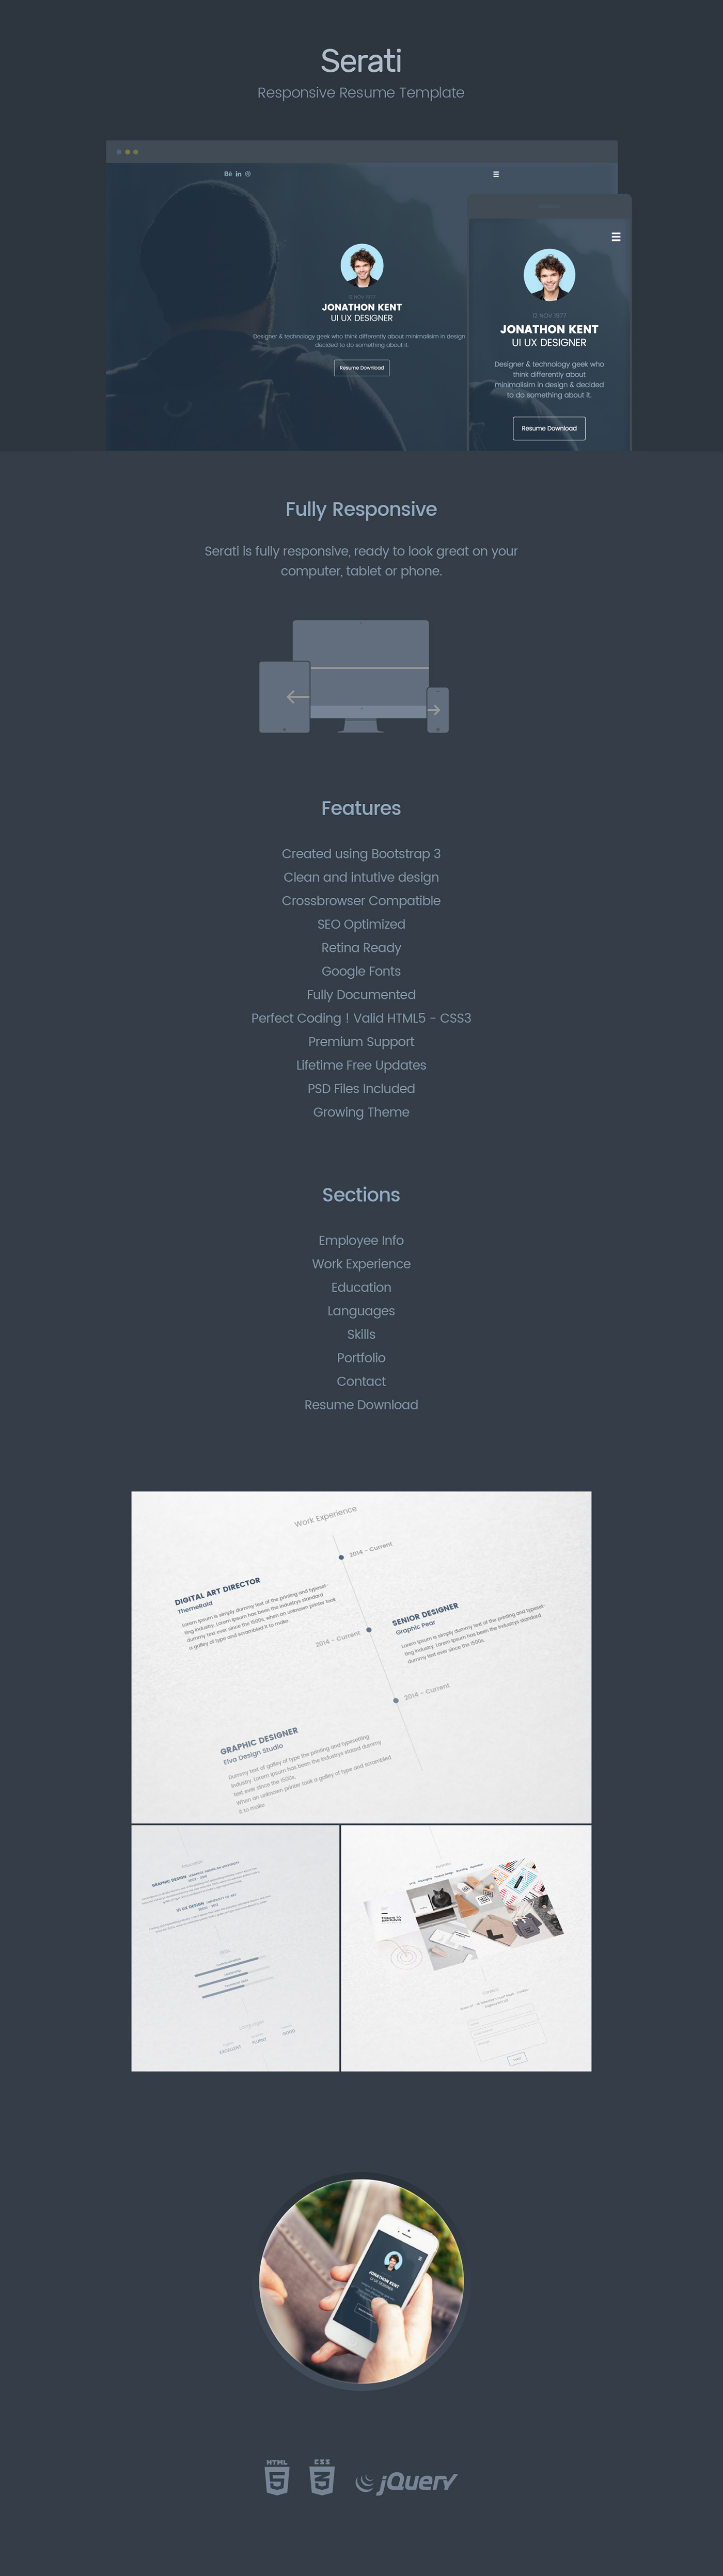 Serati free html resume template on behance pronofoot35fo Images